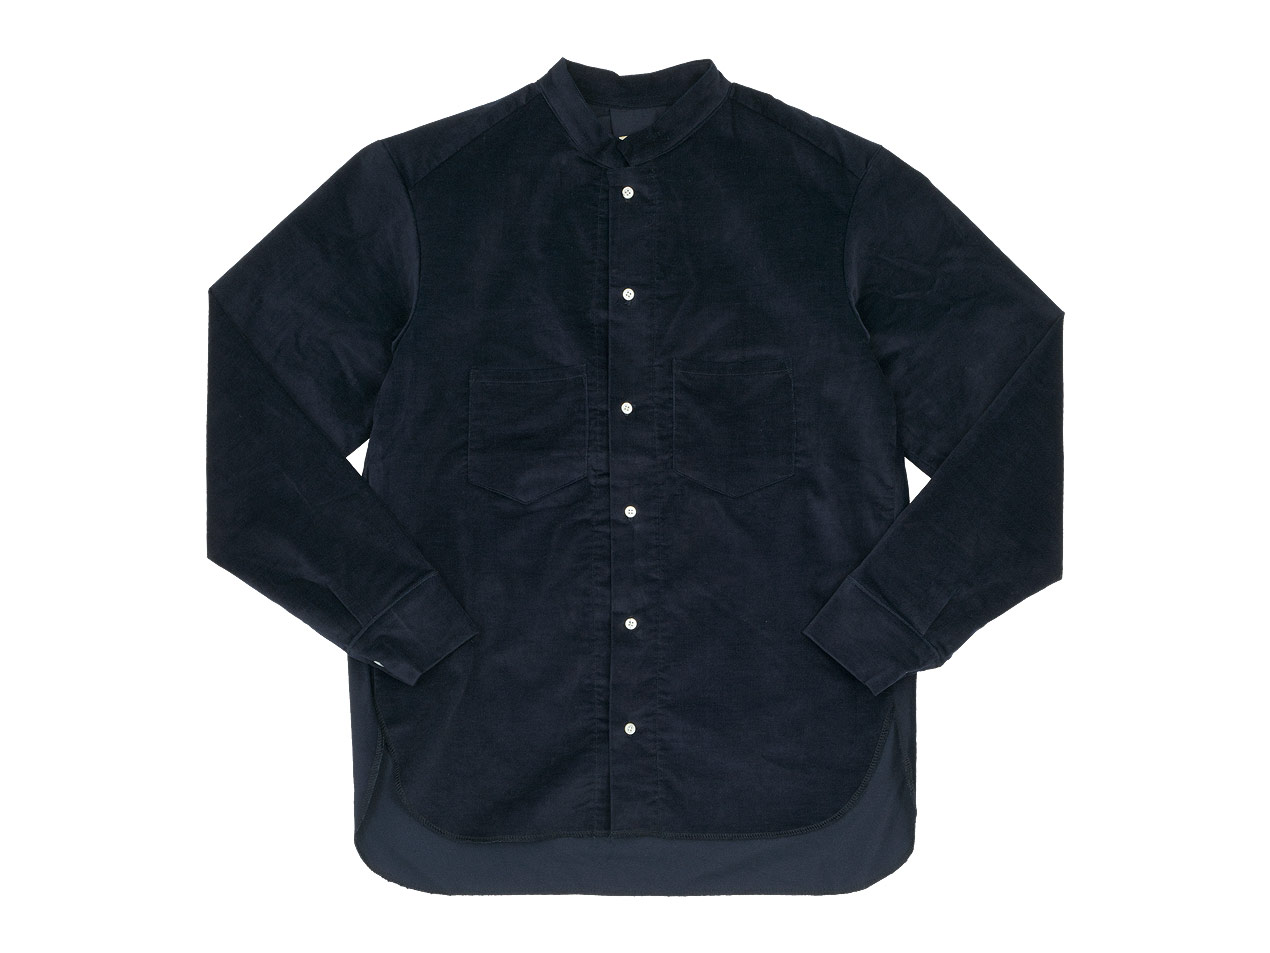 TATAMIZE STAND COLLAR SHIRTS